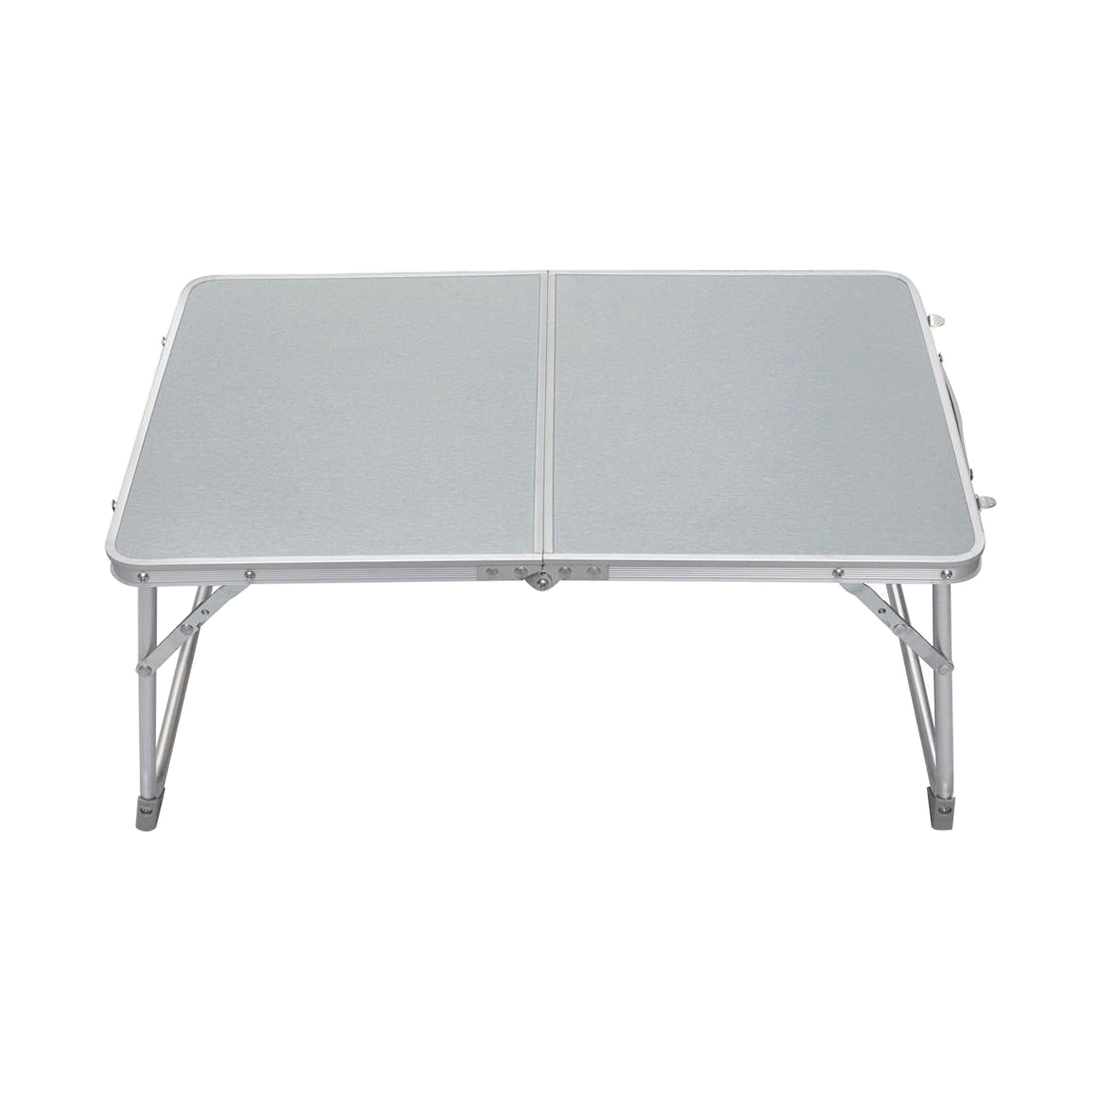 "Silver White Small 62x41x28cm/24.4x16.1x11"" Pc Laptop Table Bed Desk Camping"